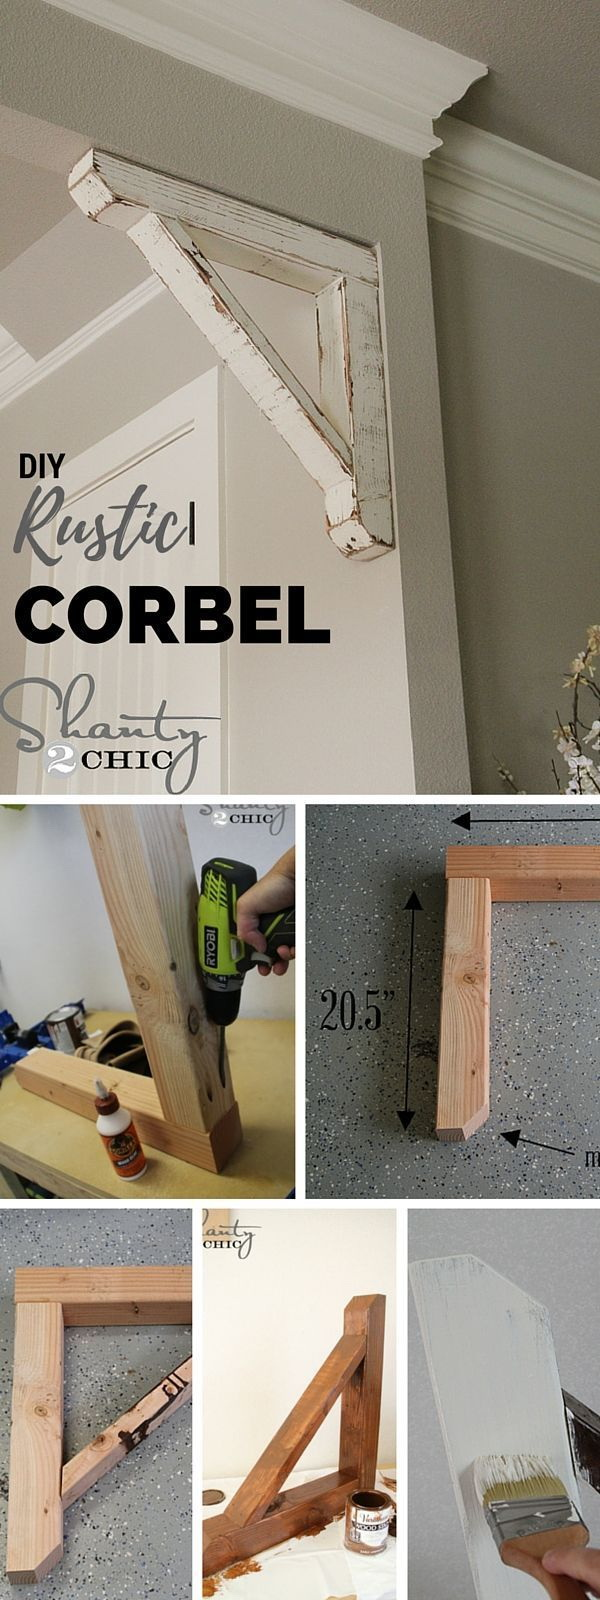 DIY Rustic Wood Corbel. A corbel is a decorative bracket that is suspended below a shelf, beam or ceiling.